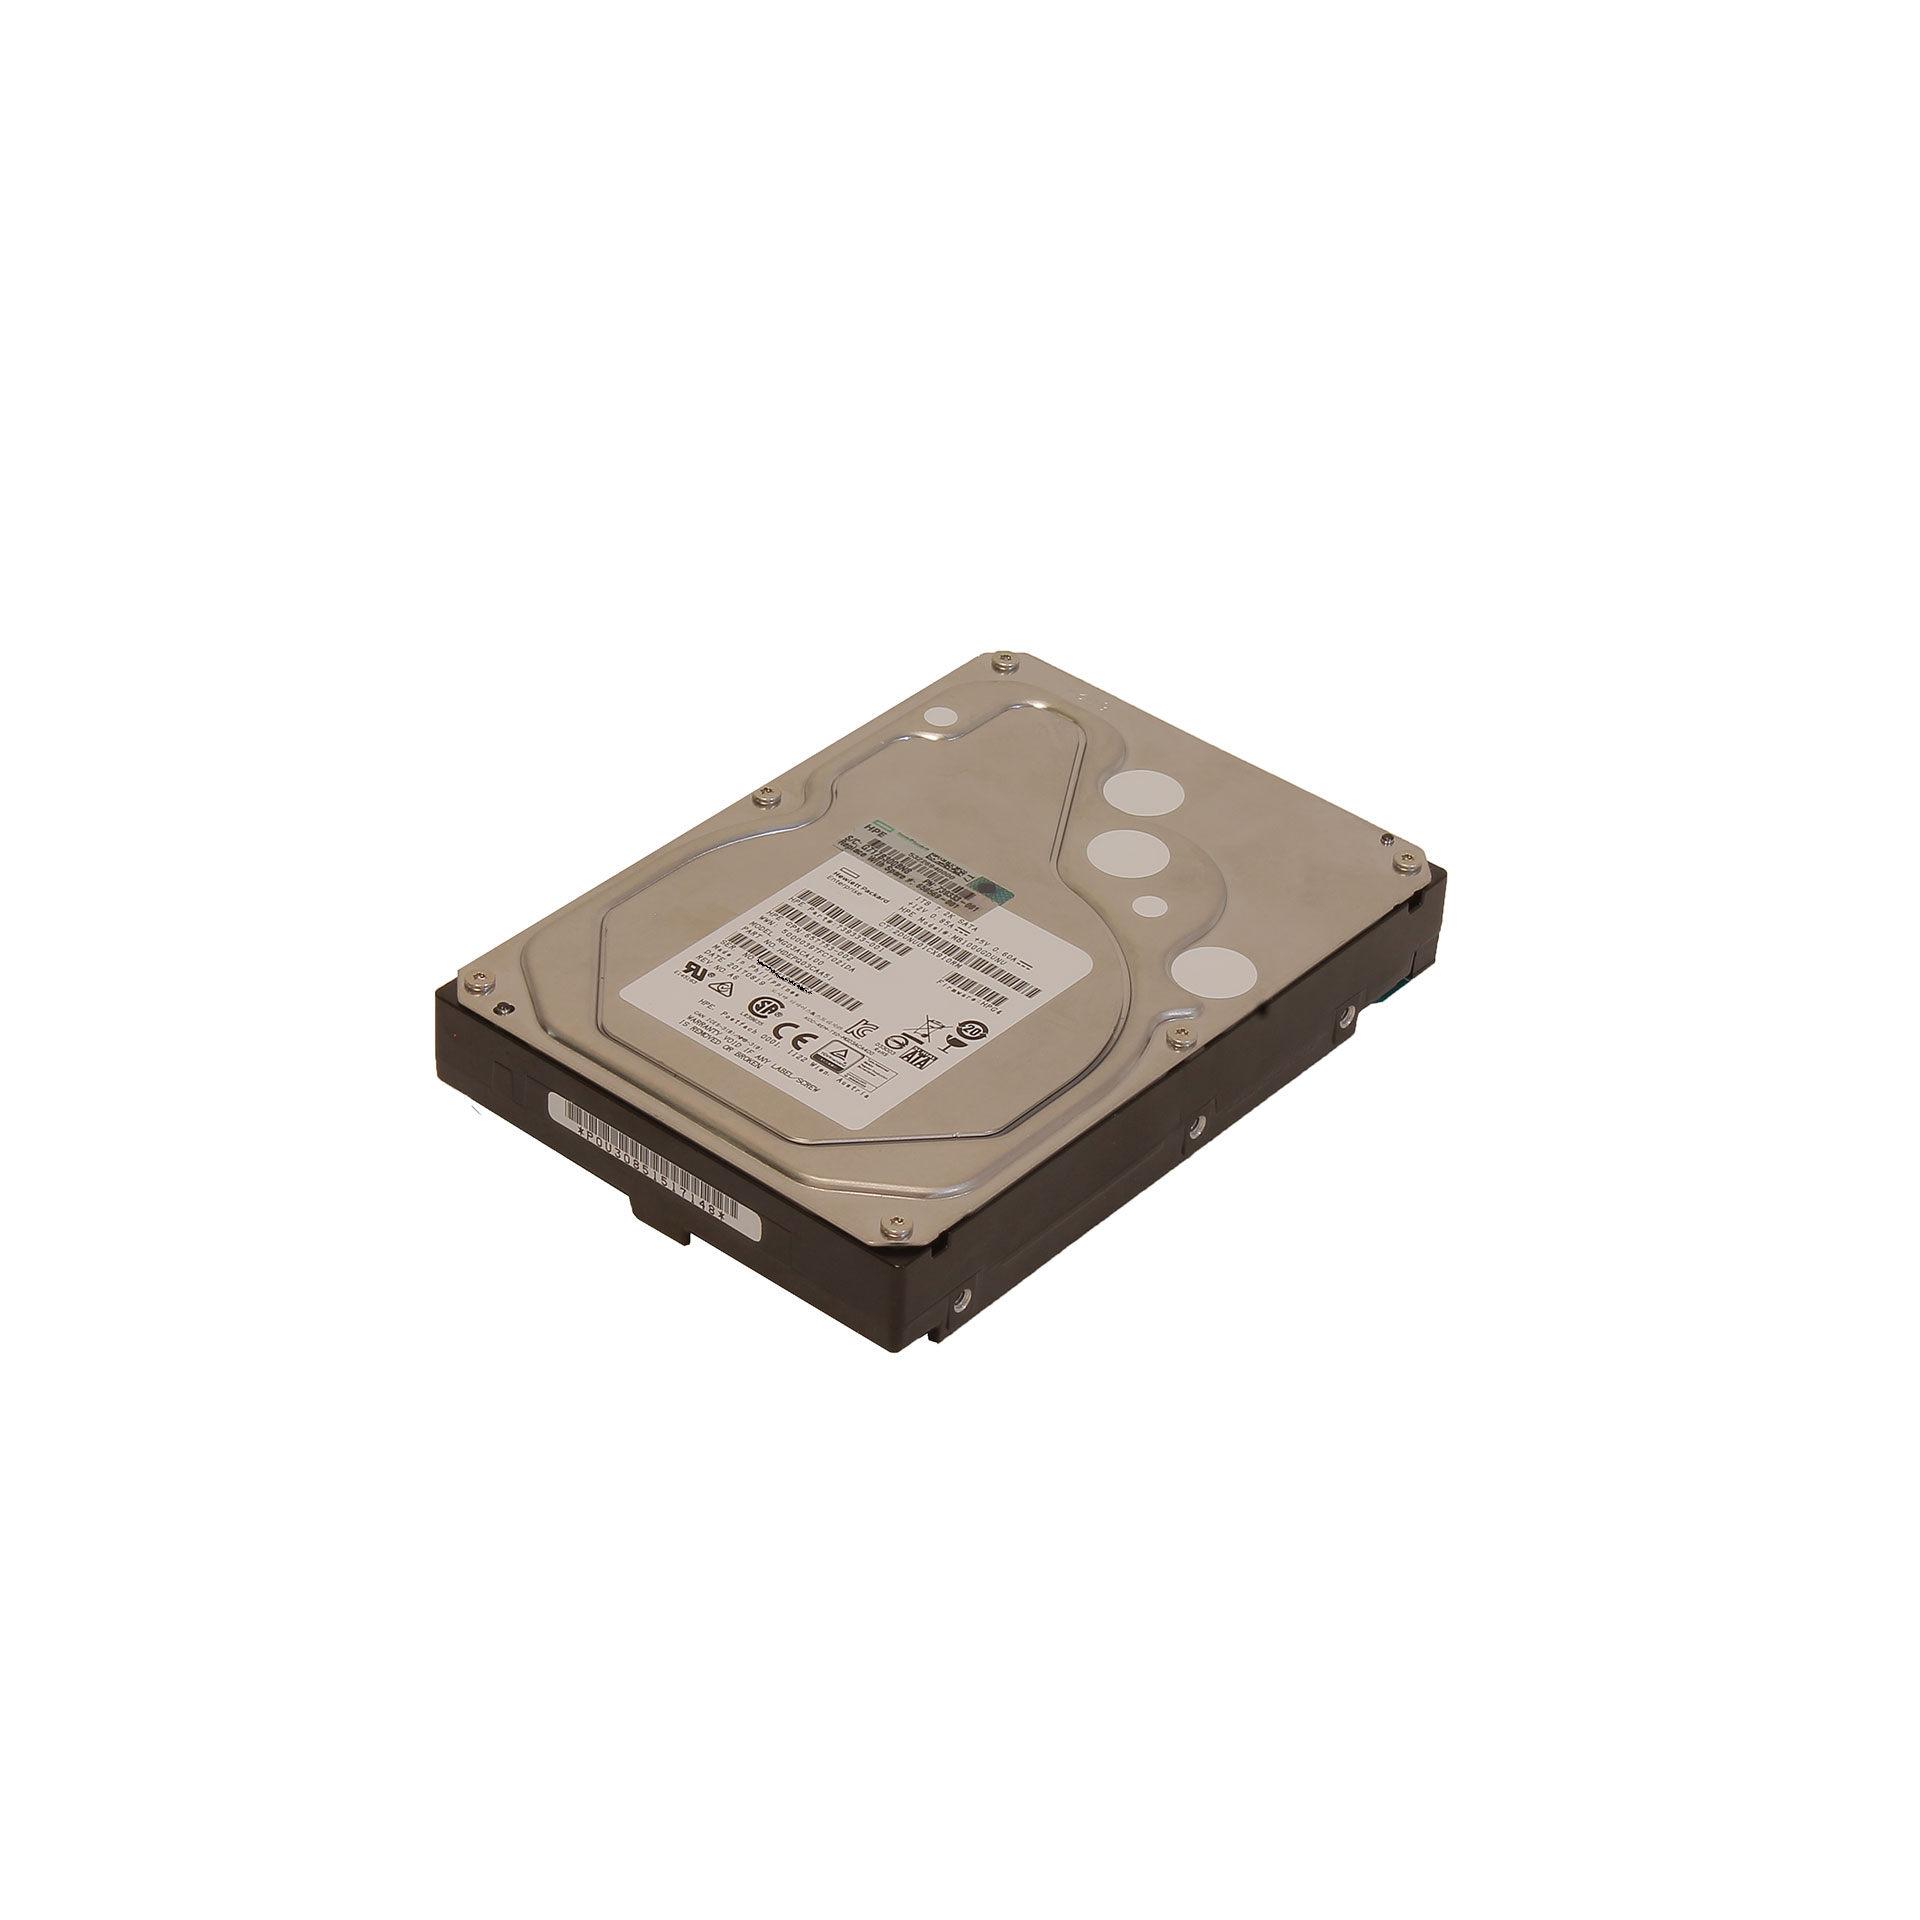 HP 1 TB HDD MB1000GDUNU 739333-001 657753-002 659569-001 3.5""